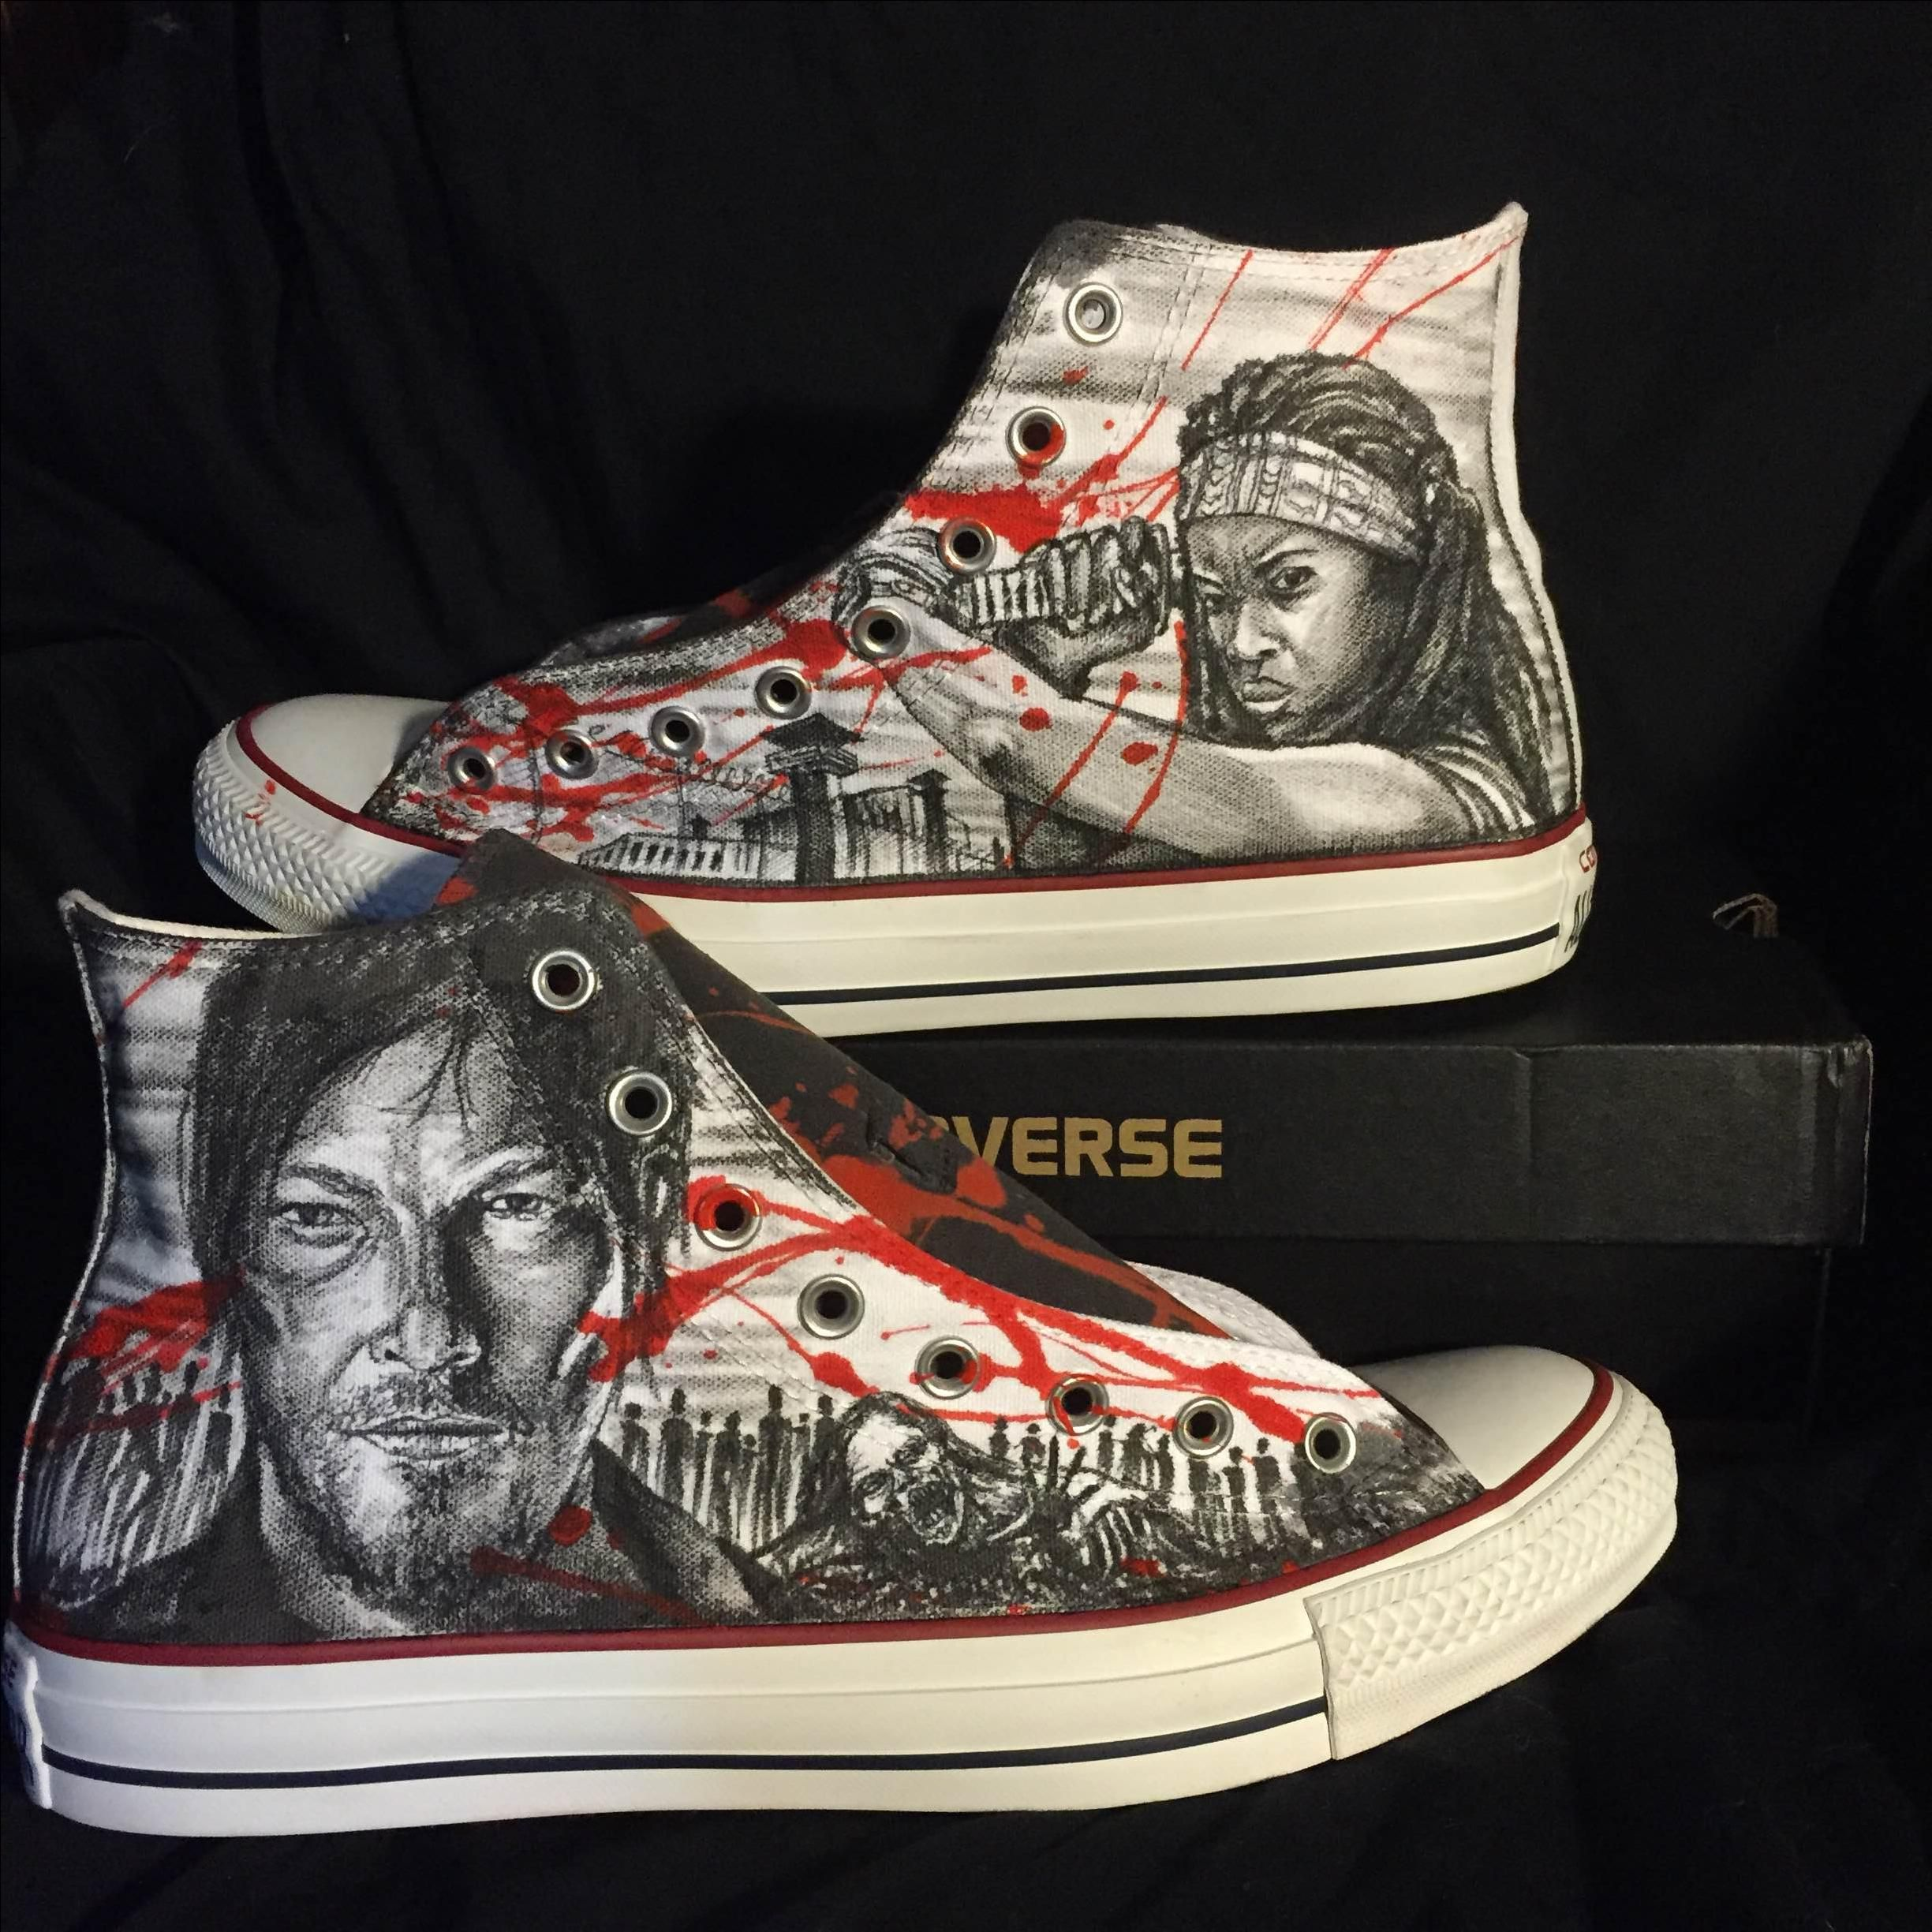 Walking dead converse shoes for sale - Custom Made Hand Drawn The Walking Dead Custom Shoes